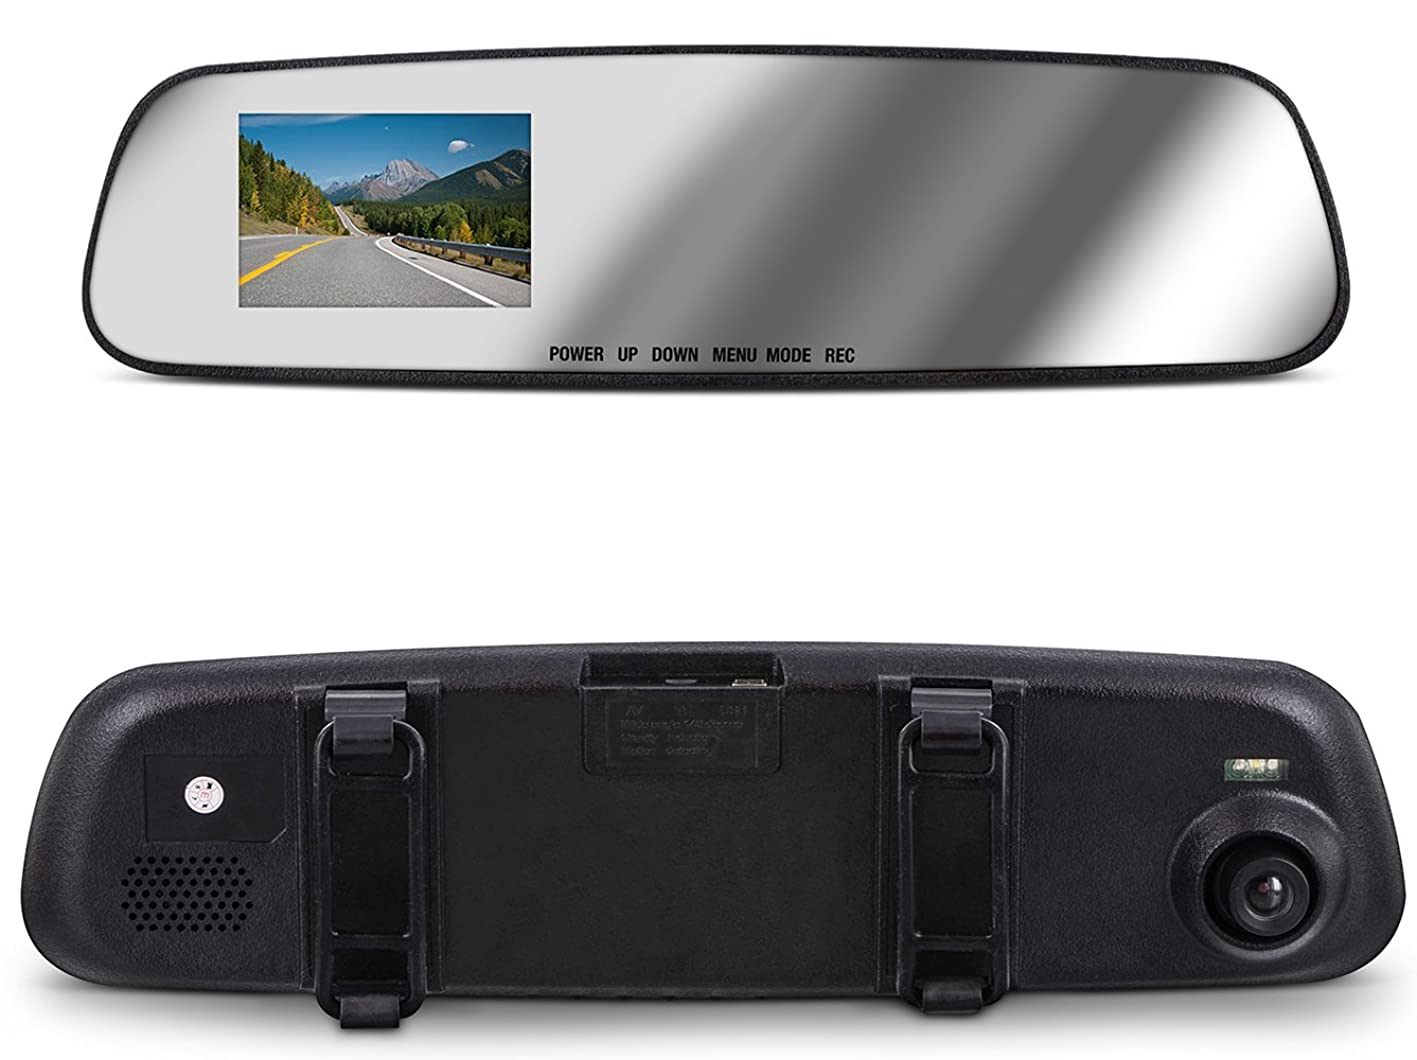 Aduro MirrorCam Rear View Mirror with Front Video Camcorder for Safety in HD, 2.6 in LCD Display, Wide Angle Lens, Seamless Video/Picture/Voice Recording, Multiple Languages vrwwhxhscxf847